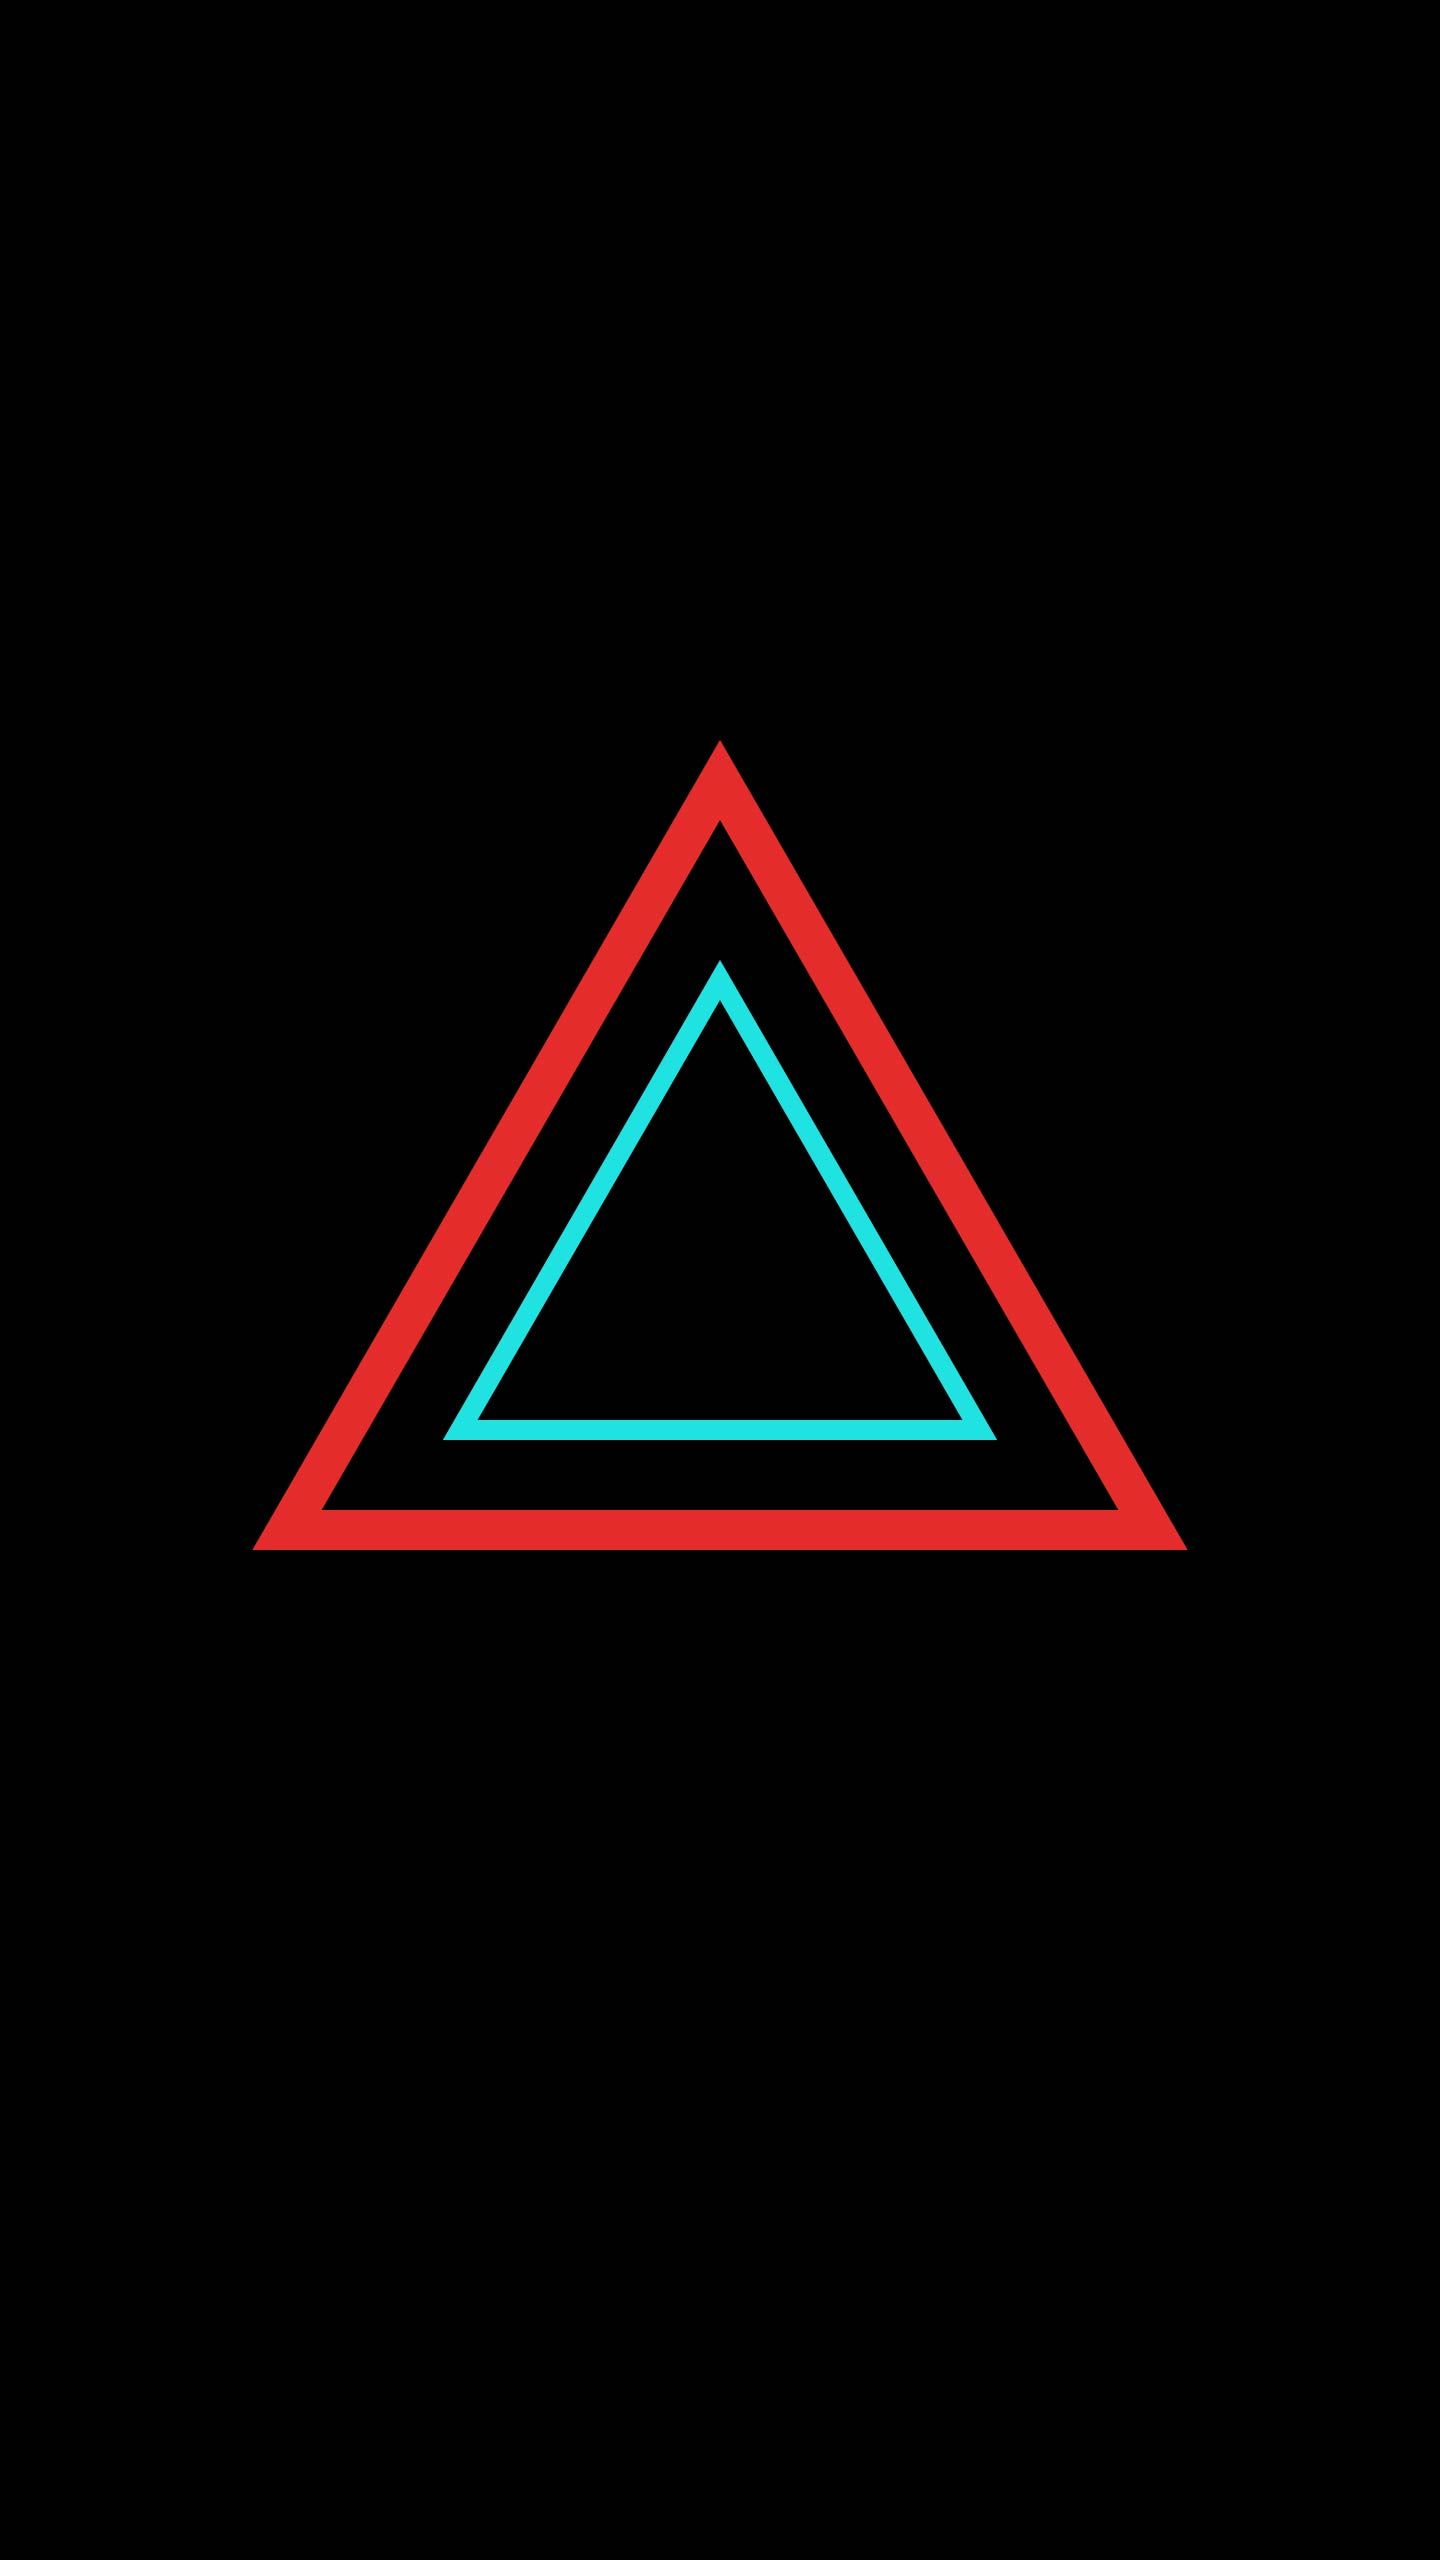 Triangle Wallpaper Black Backgrounds Wallpaper Triangle